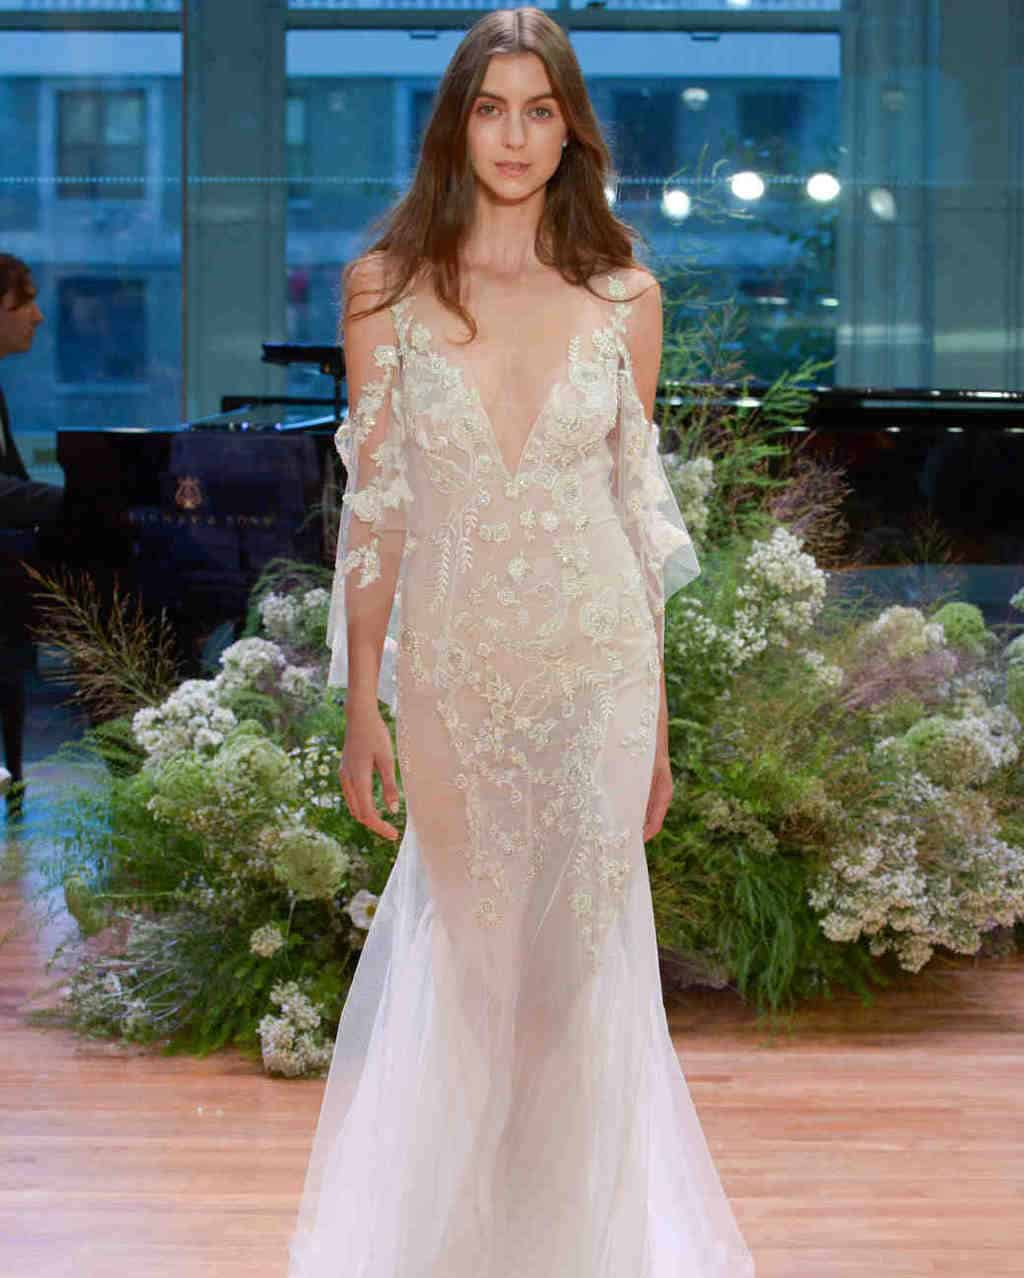 Monique-Lhuillier-wedding-dress-fall2017-62033510-013_vert-1